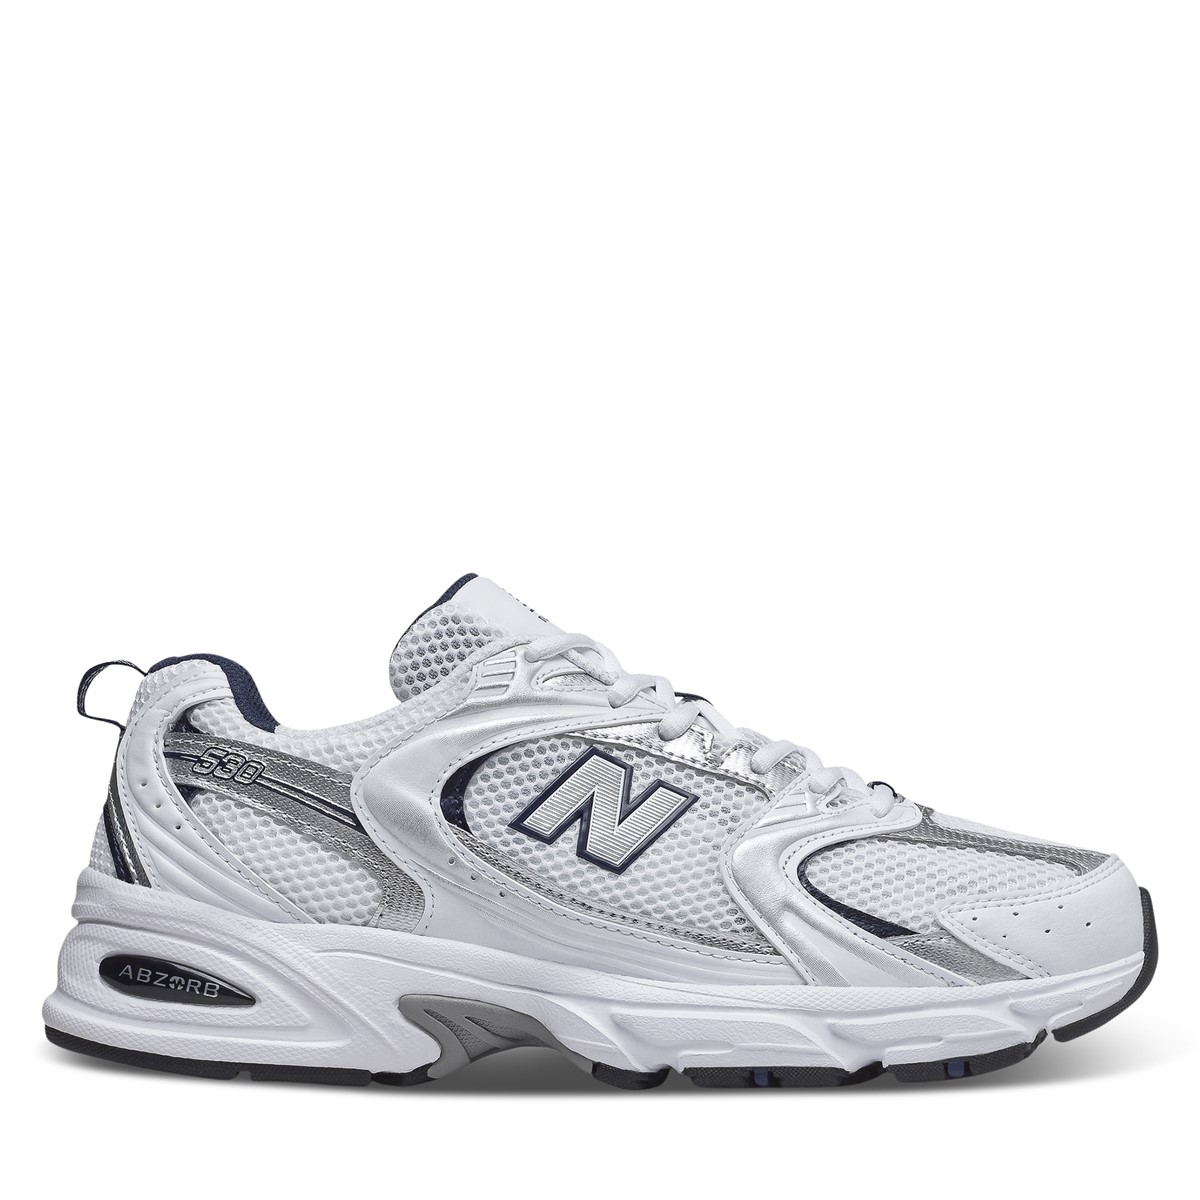 530 Sneakers in White/Grey